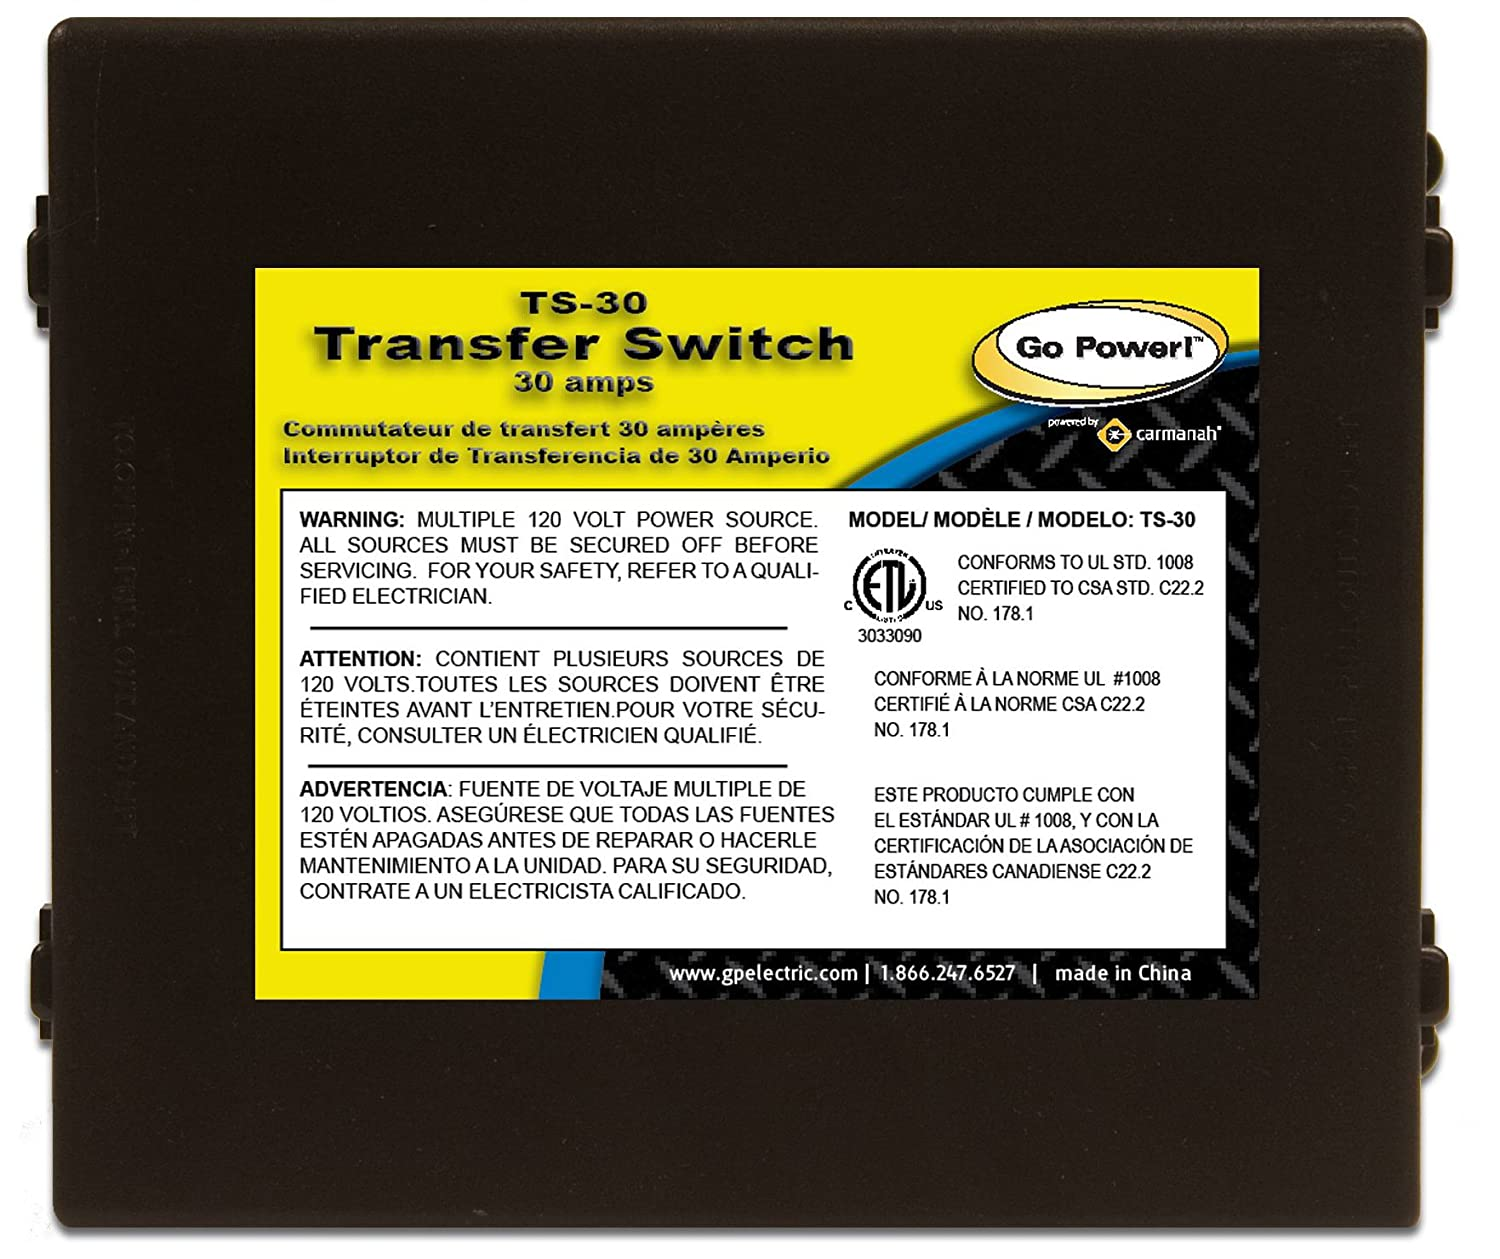 Outdoor Generator Transfer Switches Generac Smart Switch Wiring Diagram Ts 30 Amp Automatic